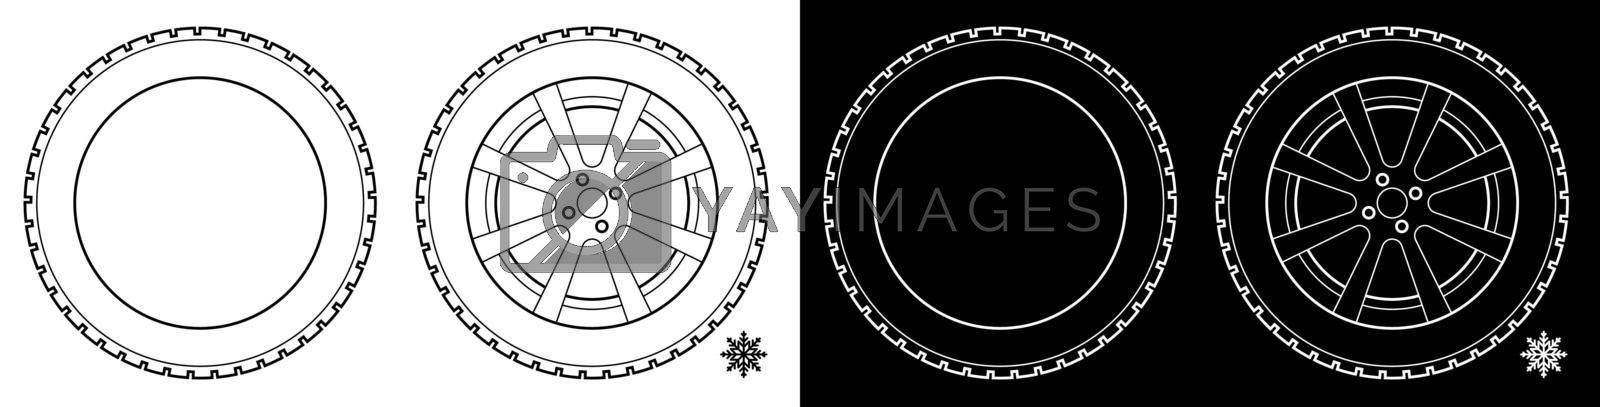 wheel with tire and winter rubber tread. Winter tires for the car. Driving on slippery road. Driving safety. Vector by RNko